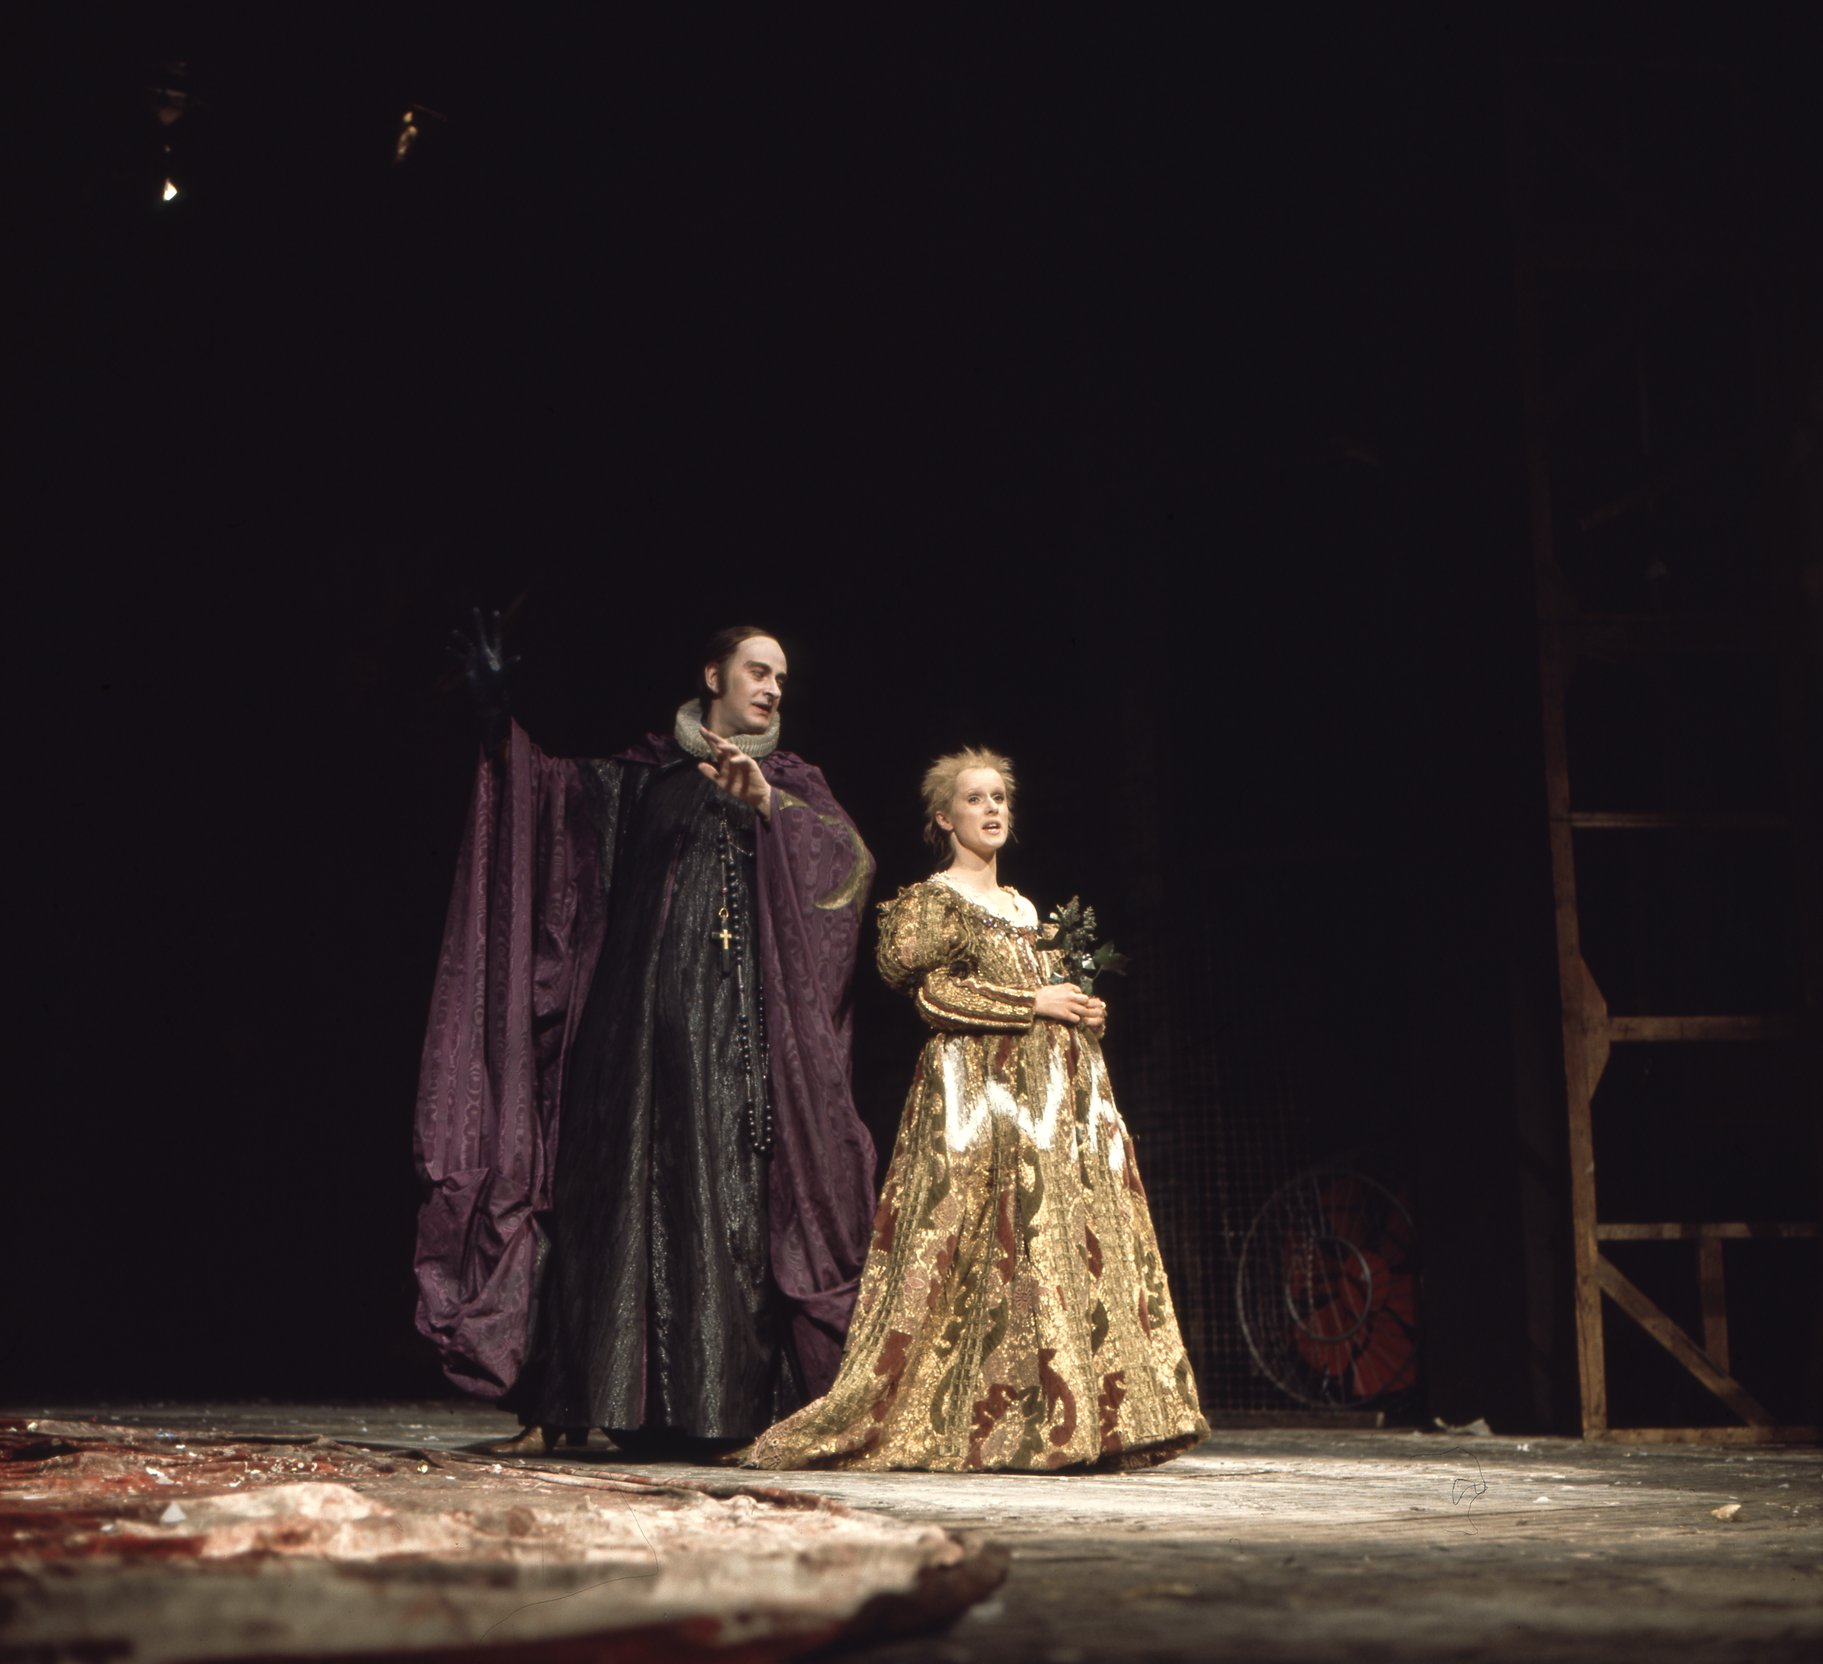 A man and woman in elaborate robes and dress.